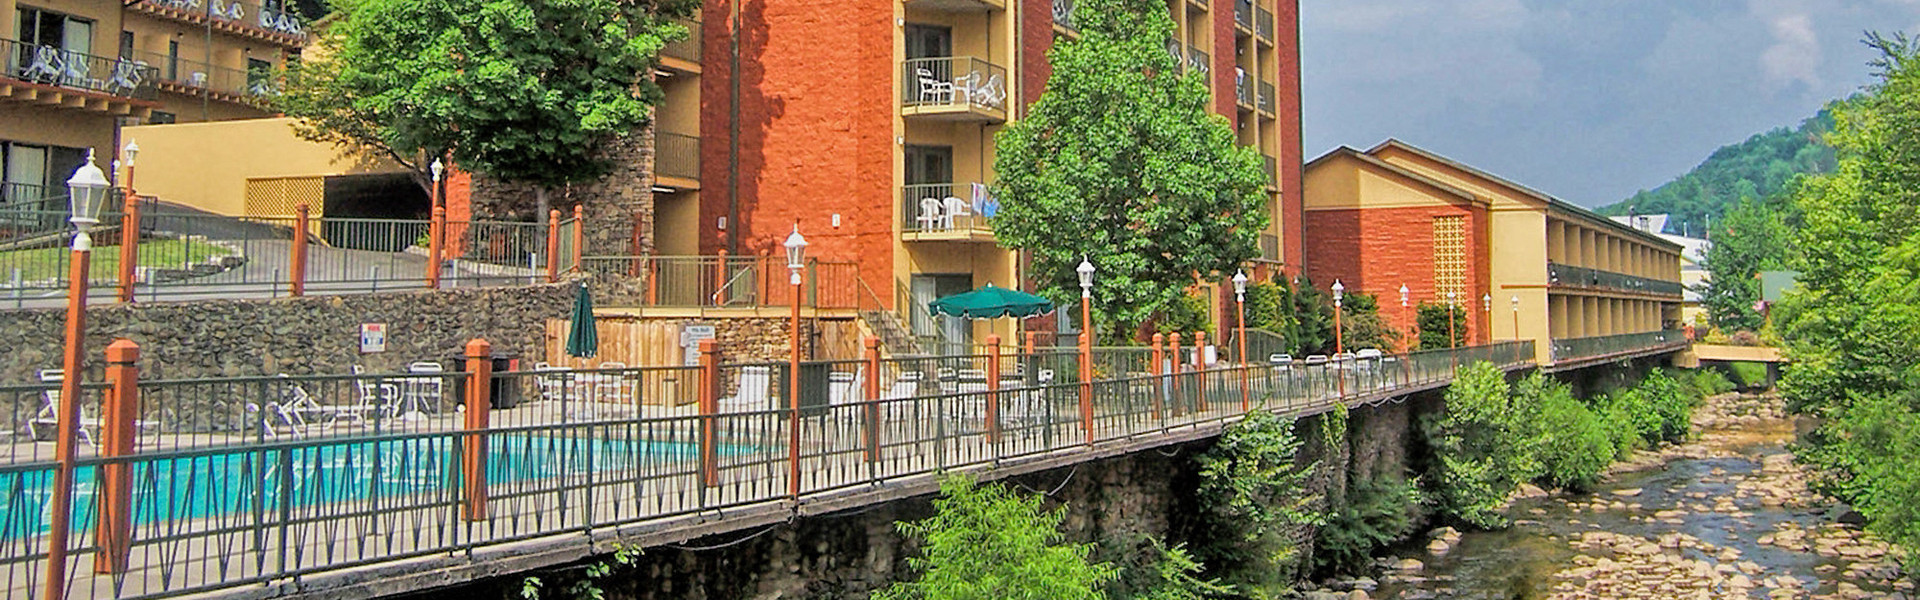 Heated Outdoor pools and spa tubs let you relax and unwind while enjoying the wooded splendor in Gatlinburg, TN after a busy day in downtown, or hiking through the Great Smoky Mountains National Park.